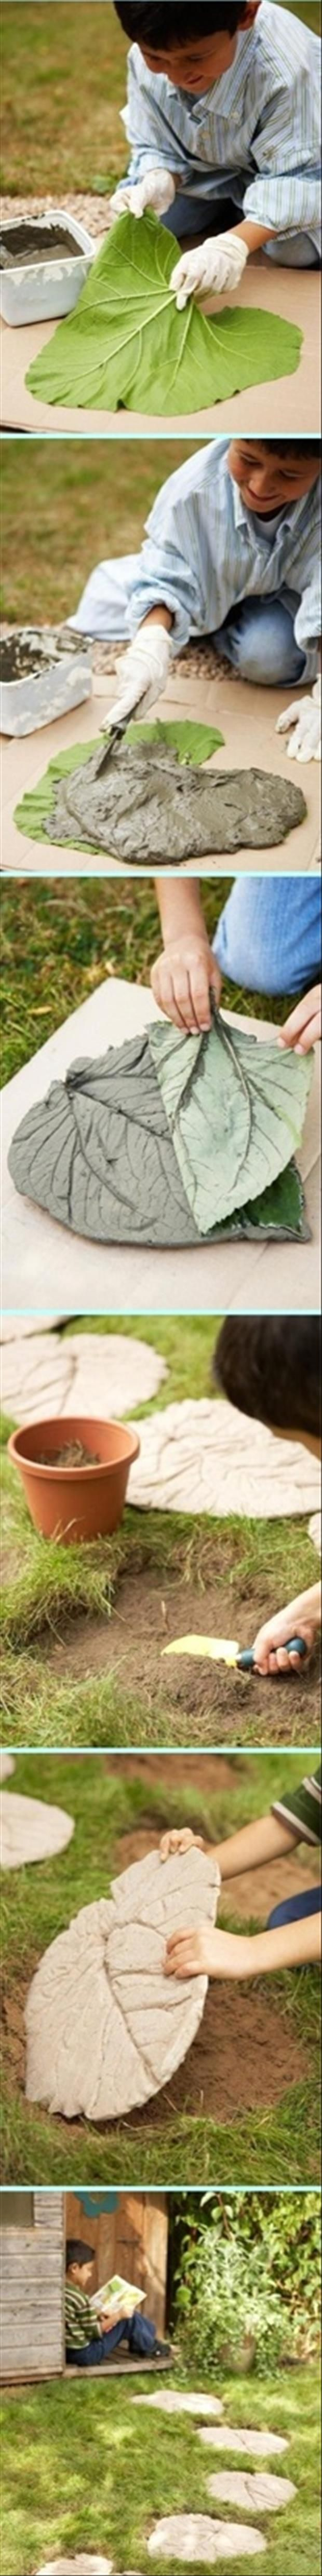 outdoor craft ideas, walking path: Craft, Elephant Ears, Cool Ideas, Leaf Stepping Stones, Kid